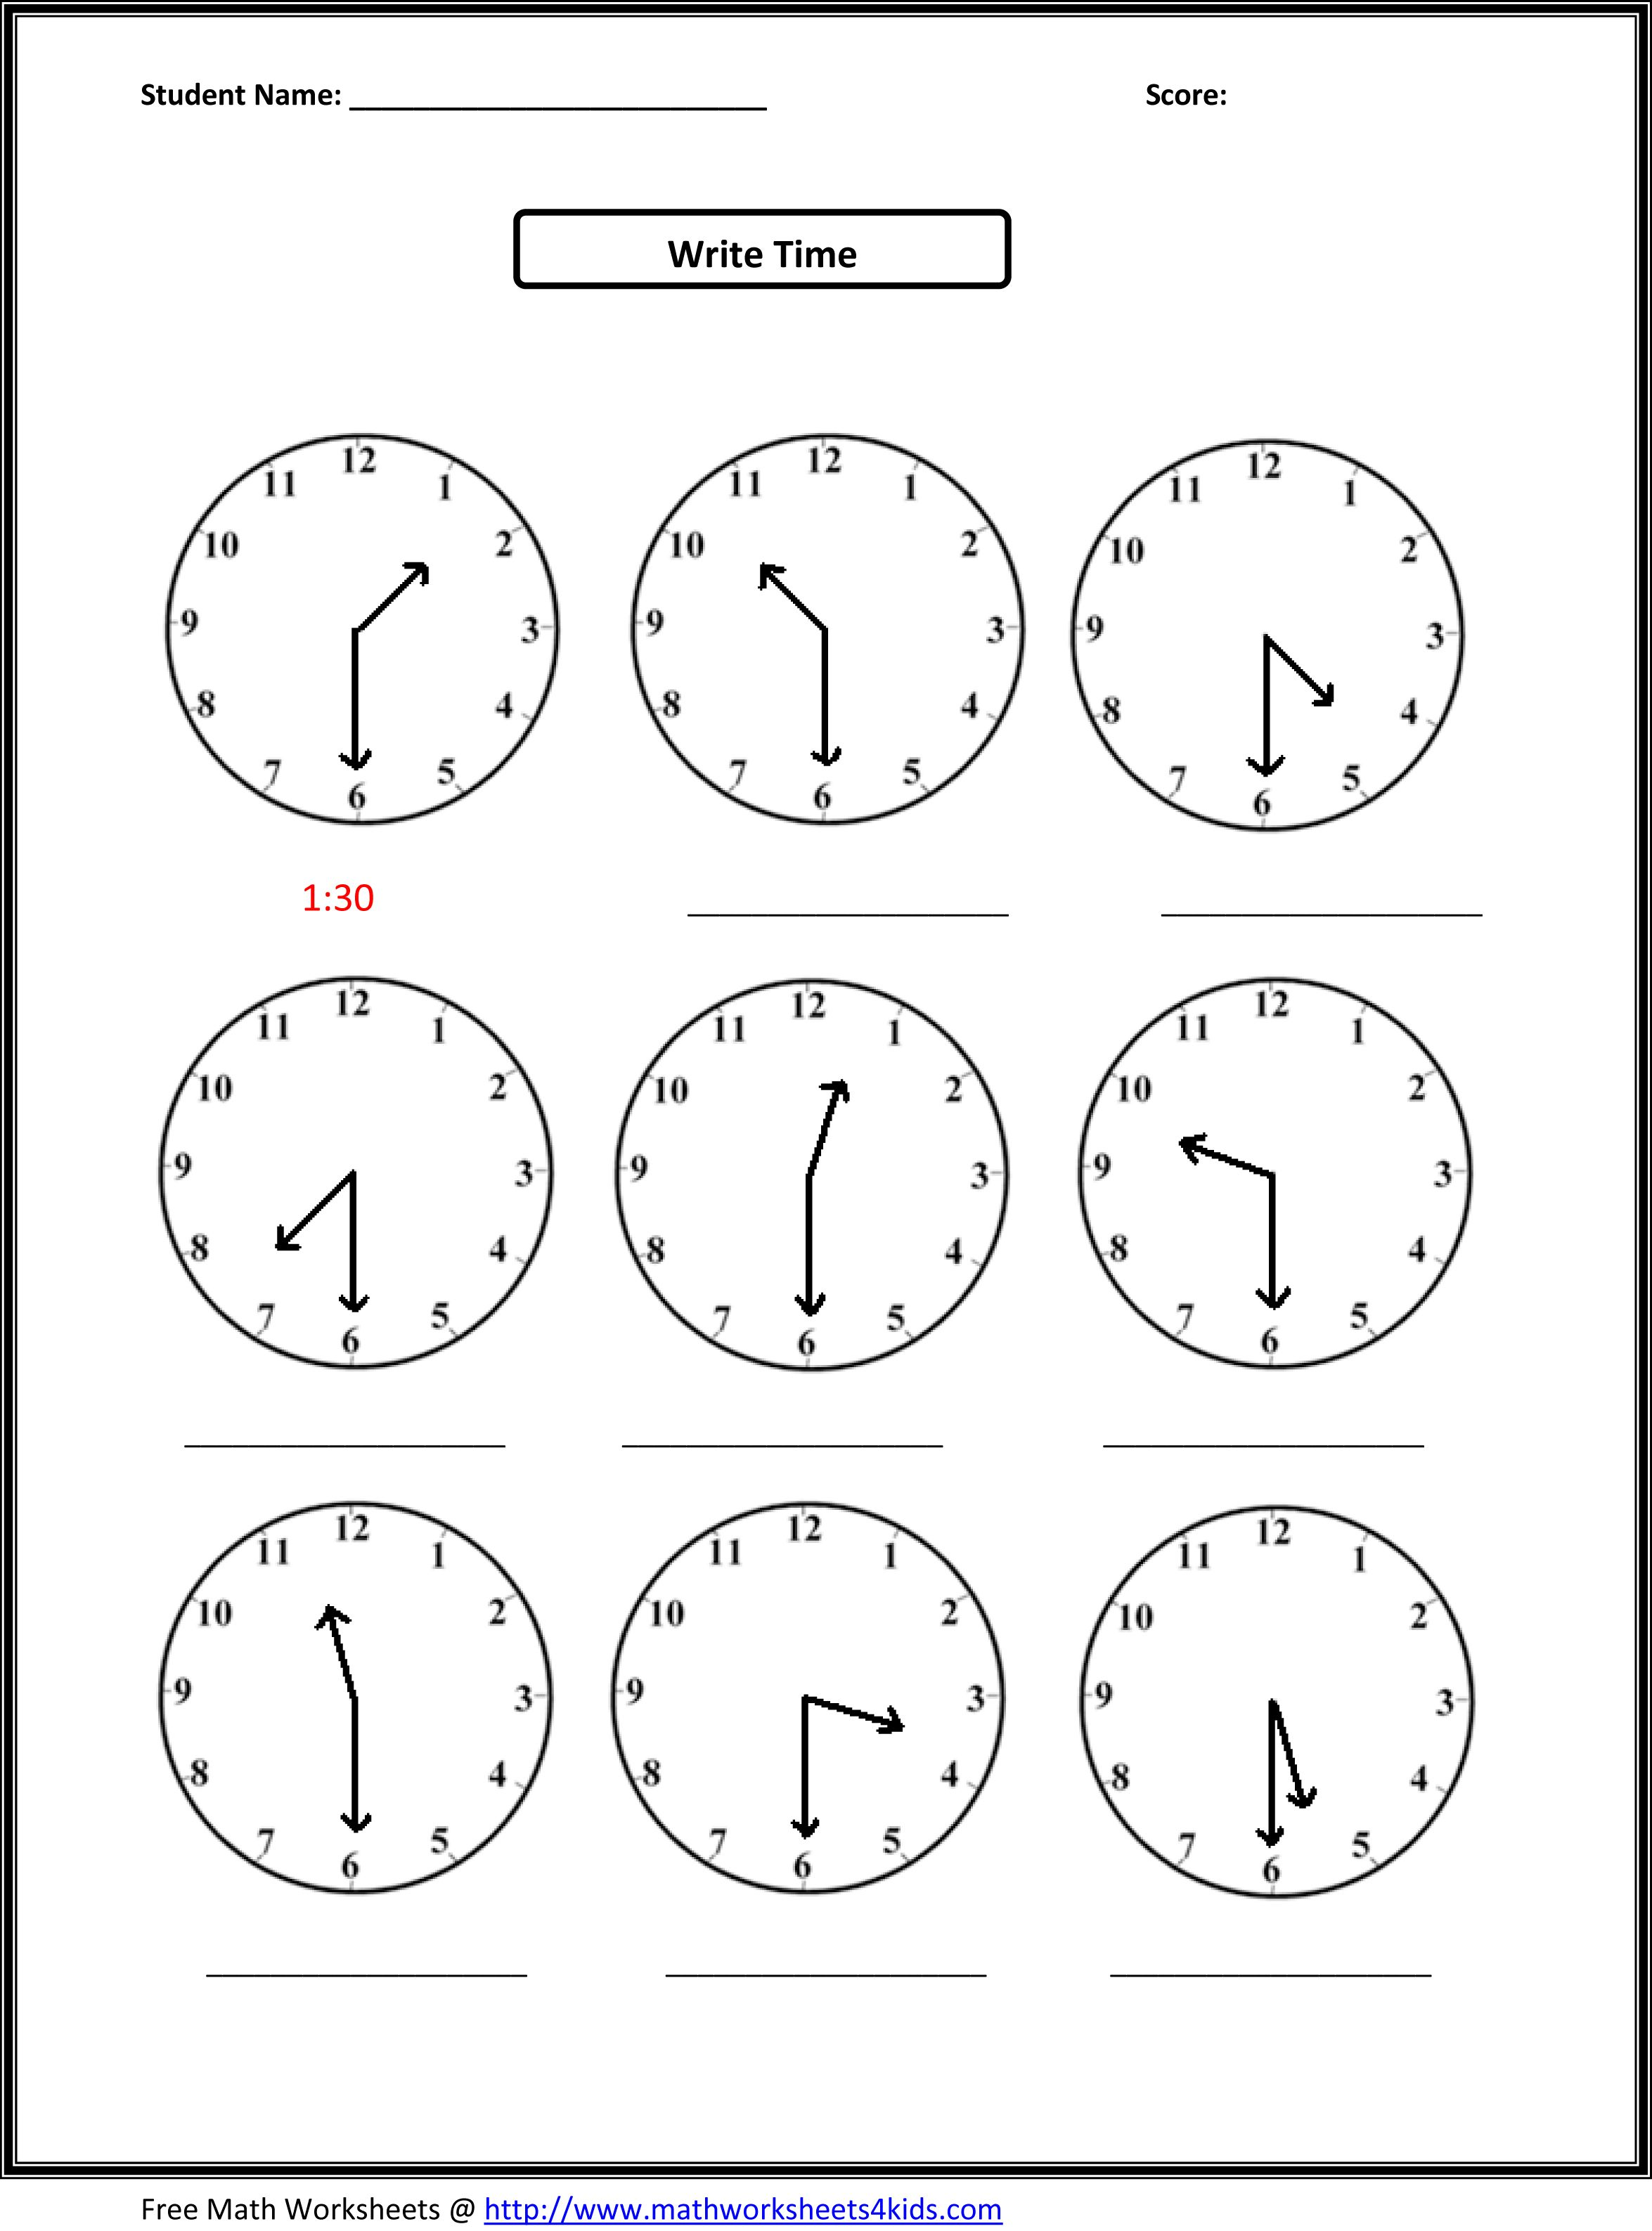 Weirdmailus  Terrific Worksheet On Time For Grade   Reocurent With Hot Free Printable Telling Time Worksheets Nd Grade  Reocurent With Astonishing Spelling Worksheets For Grade  Also Worksheet On Parallelograms In Addition When Worksheets And Finding Angle Measures Worksheet As Well As Short And Long O Worksheets Additionally Celebrate Recovery Inventory Worksheet From Reocurentcom With Weirdmailus  Hot Worksheet On Time For Grade   Reocurent With Astonishing Free Printable Telling Time Worksheets Nd Grade  Reocurent And Terrific Spelling Worksheets For Grade  Also Worksheet On Parallelograms In Addition When Worksheets From Reocurentcom